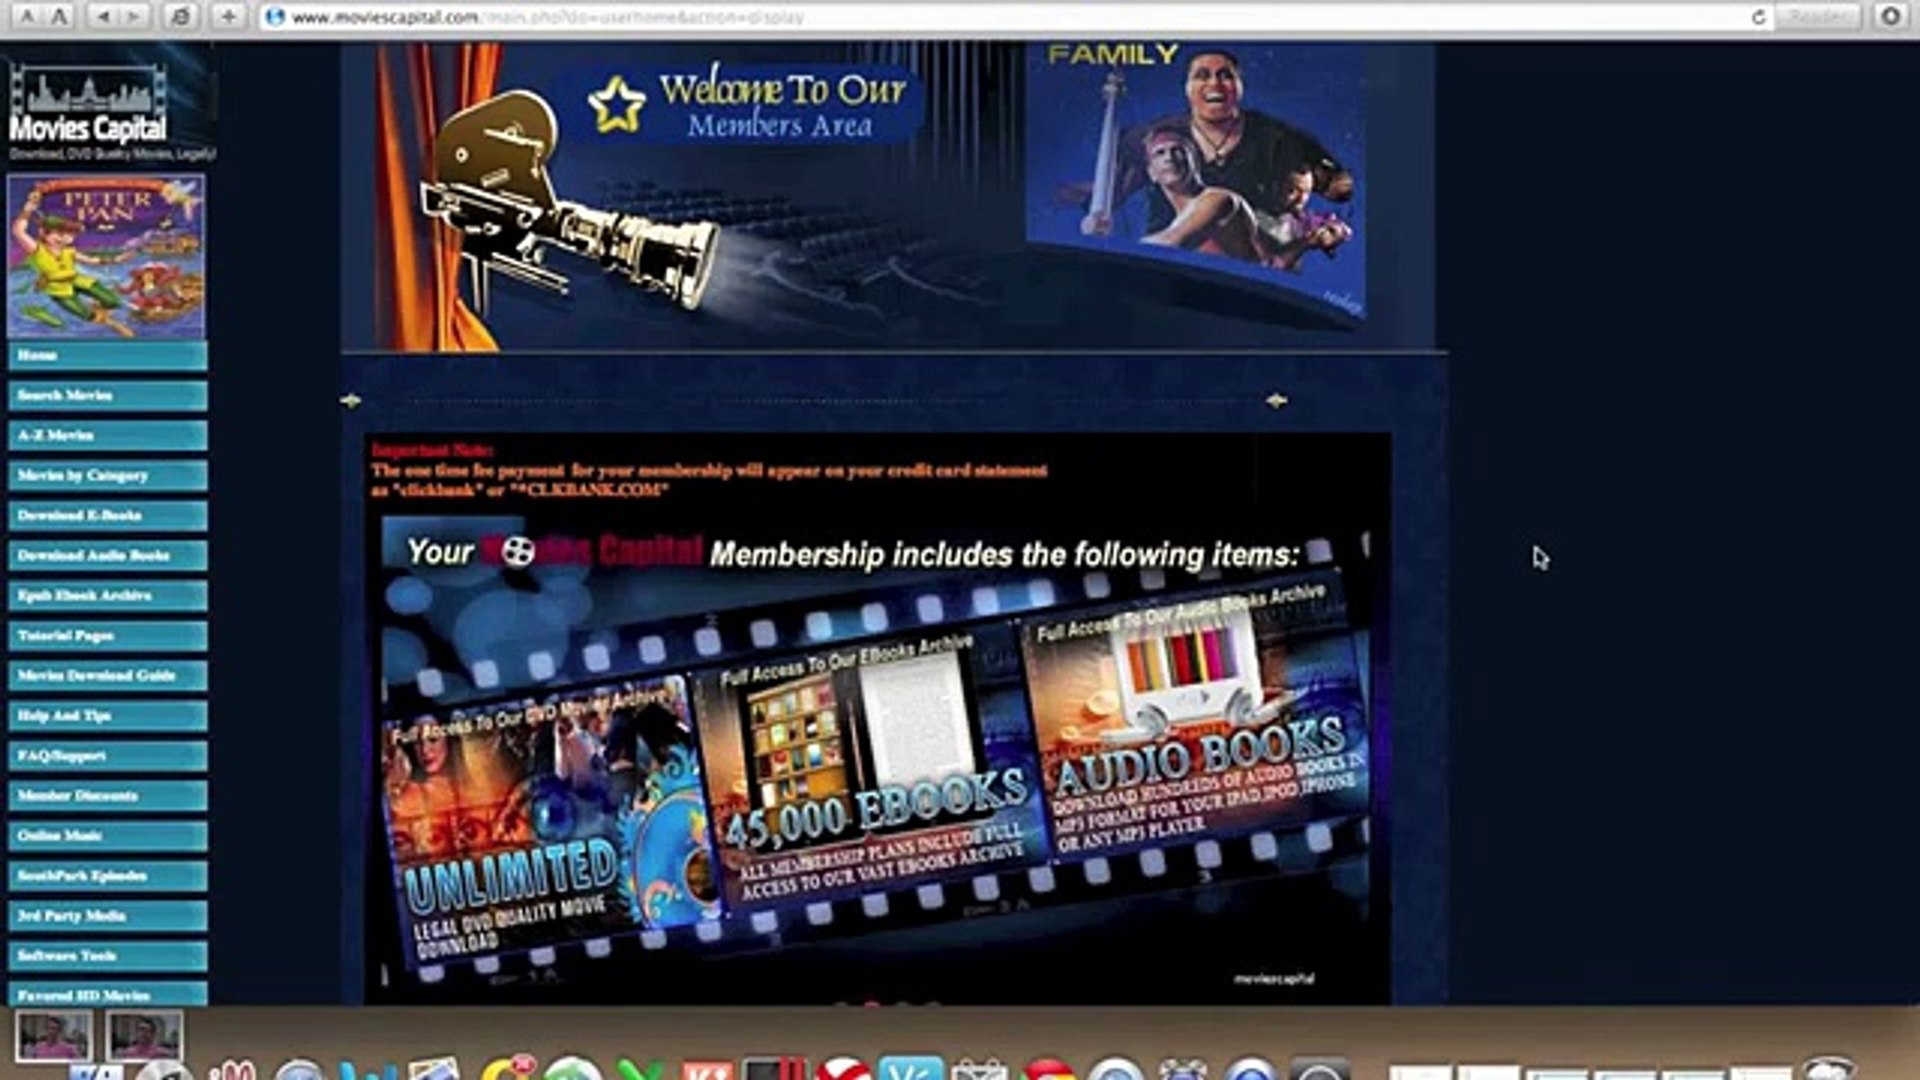 Movies Capital Website Review: How to download and watch movies offline then